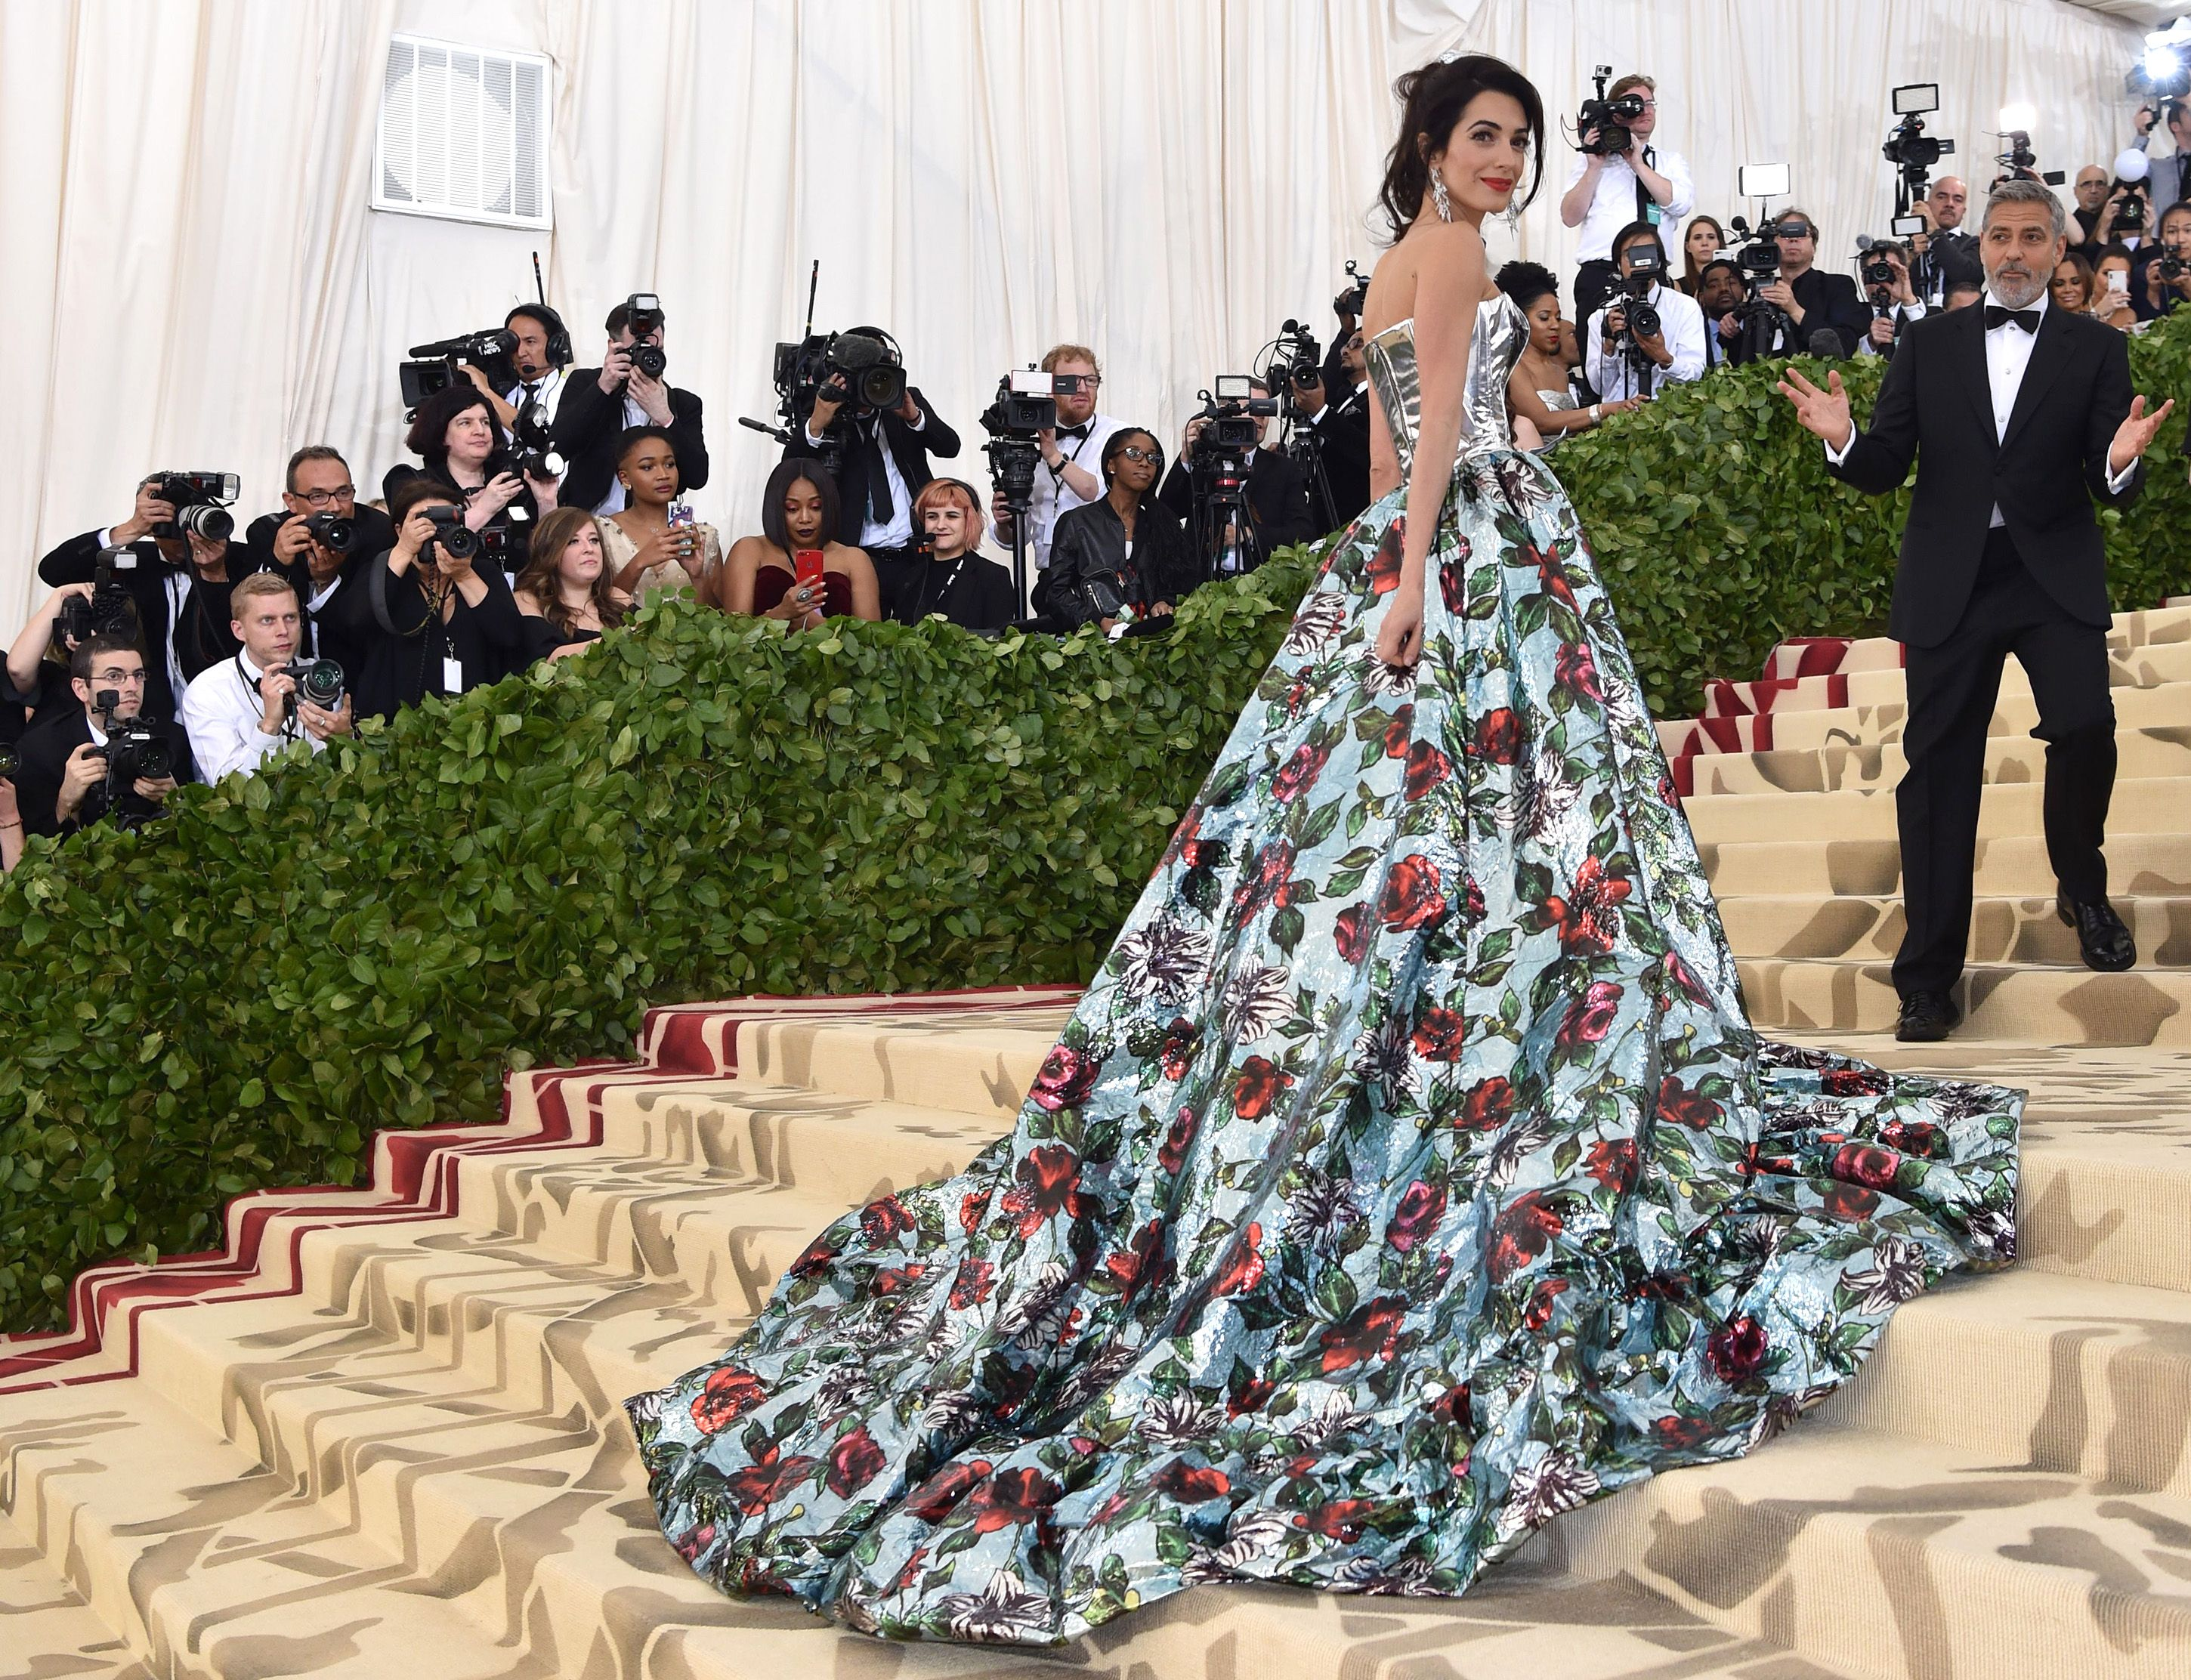 131c391cb5 Everything you need to know about the 2019 Met Gala Camp Notes on Fashion –  When is the 2019 Met Gala